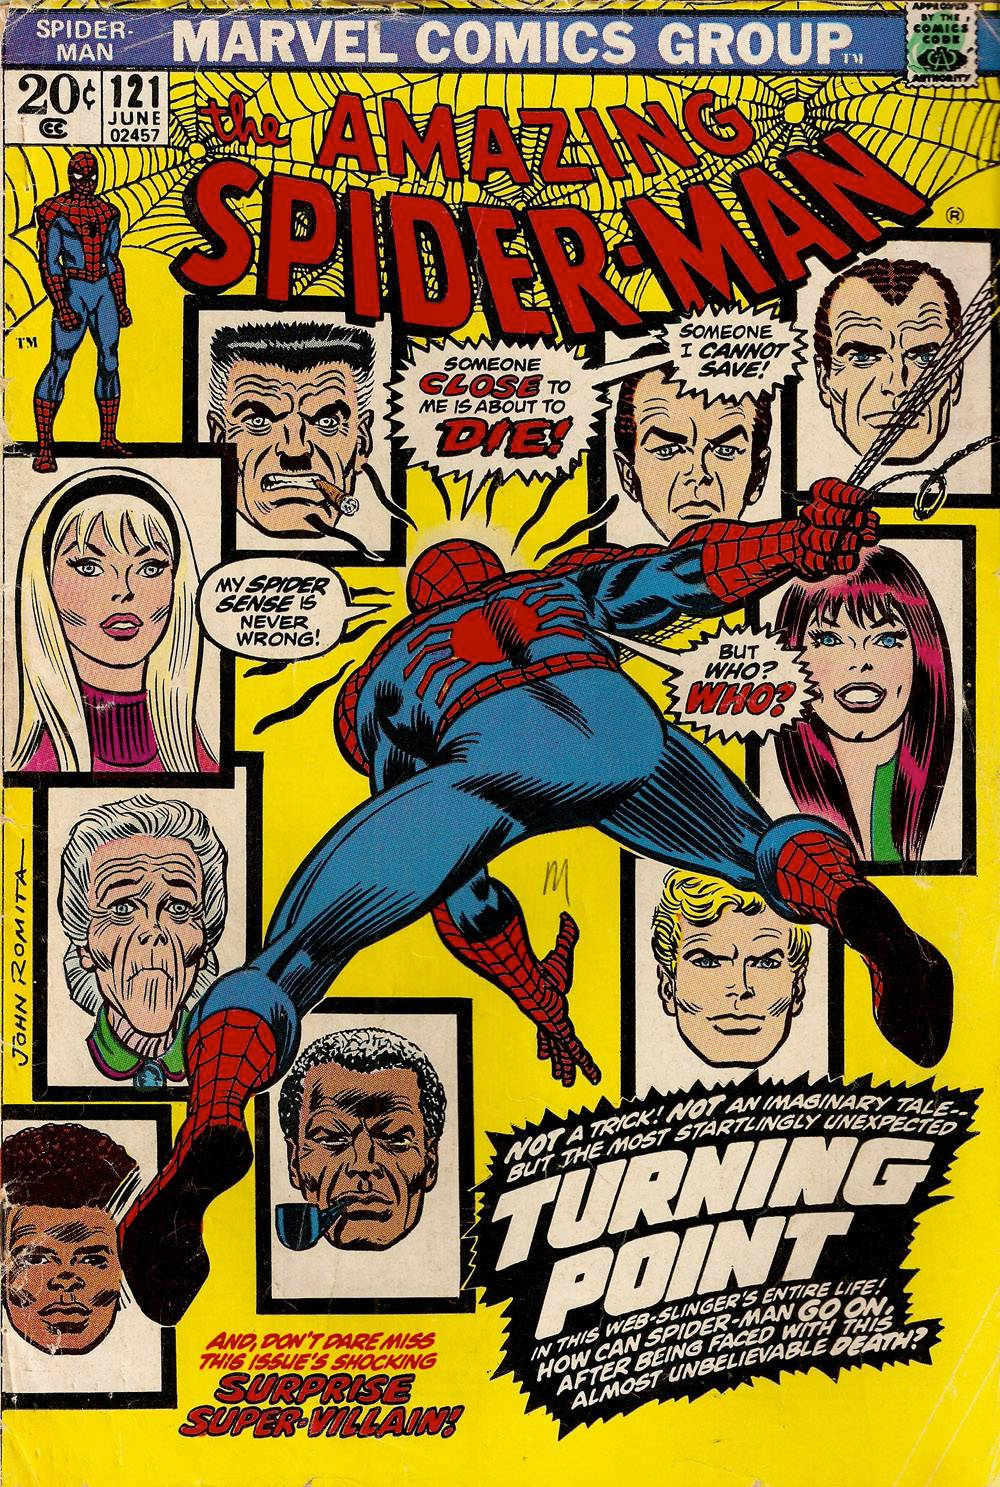 Classic Comic Book Cover : New poster for 'the amazing spider man pays homage to